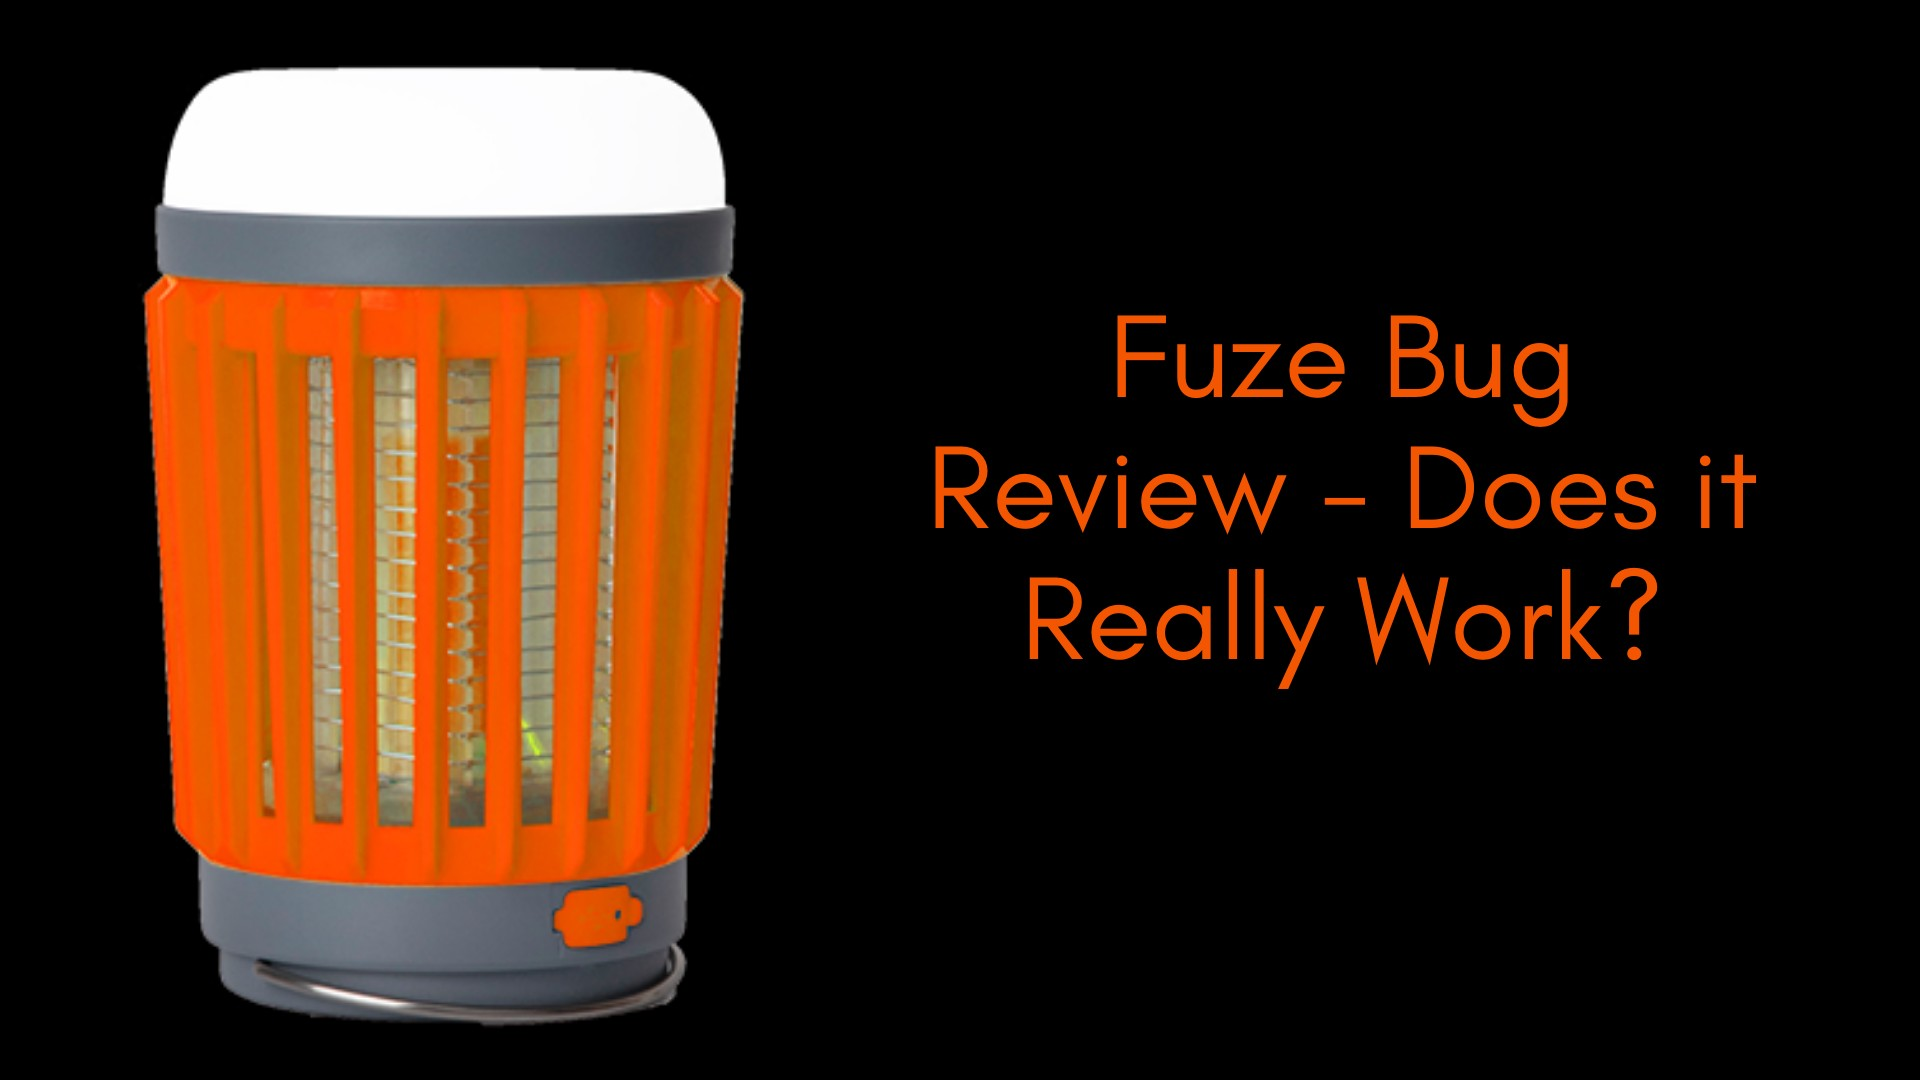 What Are The Important Aspects To Consider At The Time Of Buying Fuze Bug?